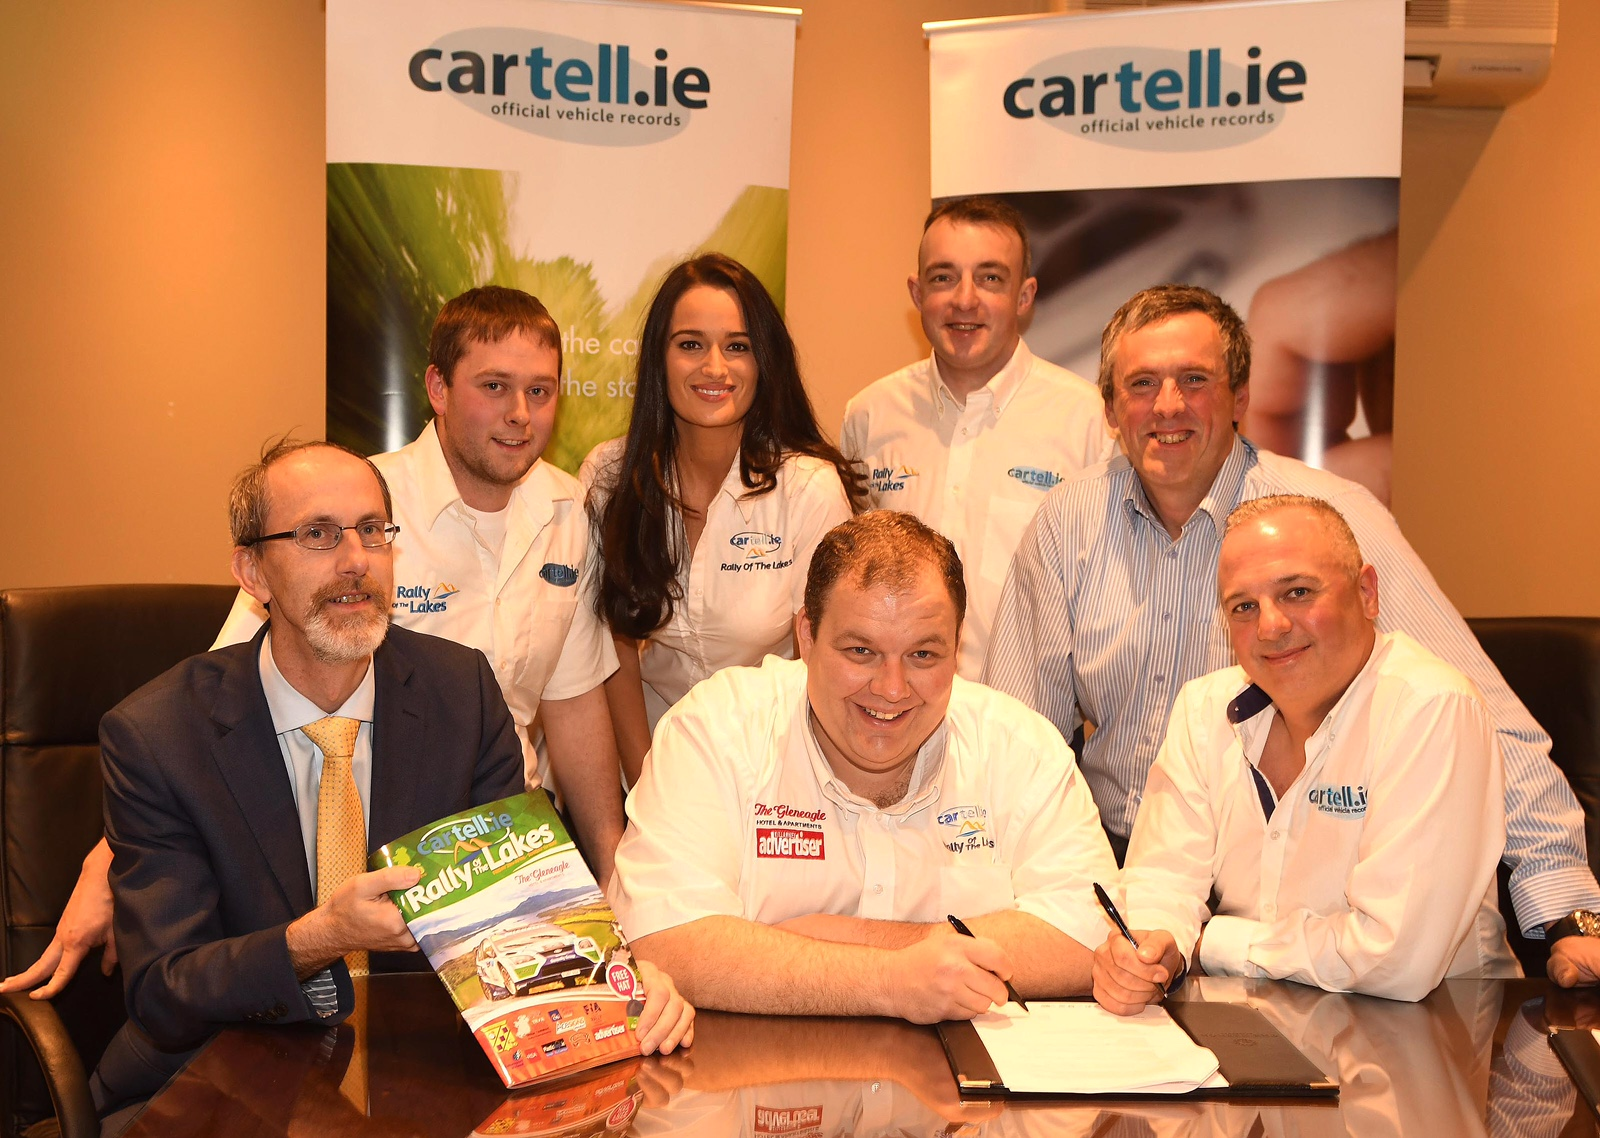 Derek Lee, Gleneagle Hotel, Anthony O'Connor, Clerk of the Course, and Richie Lahiff ,cartell.ie, seated with Adrian Cronin, Mags Milner, Johnny Hickey and Diarmuid Cronin, (Killarney and District Motor Club Chairman) at the signing of a sponsorship contract extension forthe cartell.ie International Rally of the Lakes. Picture: Eamonn Keogh (